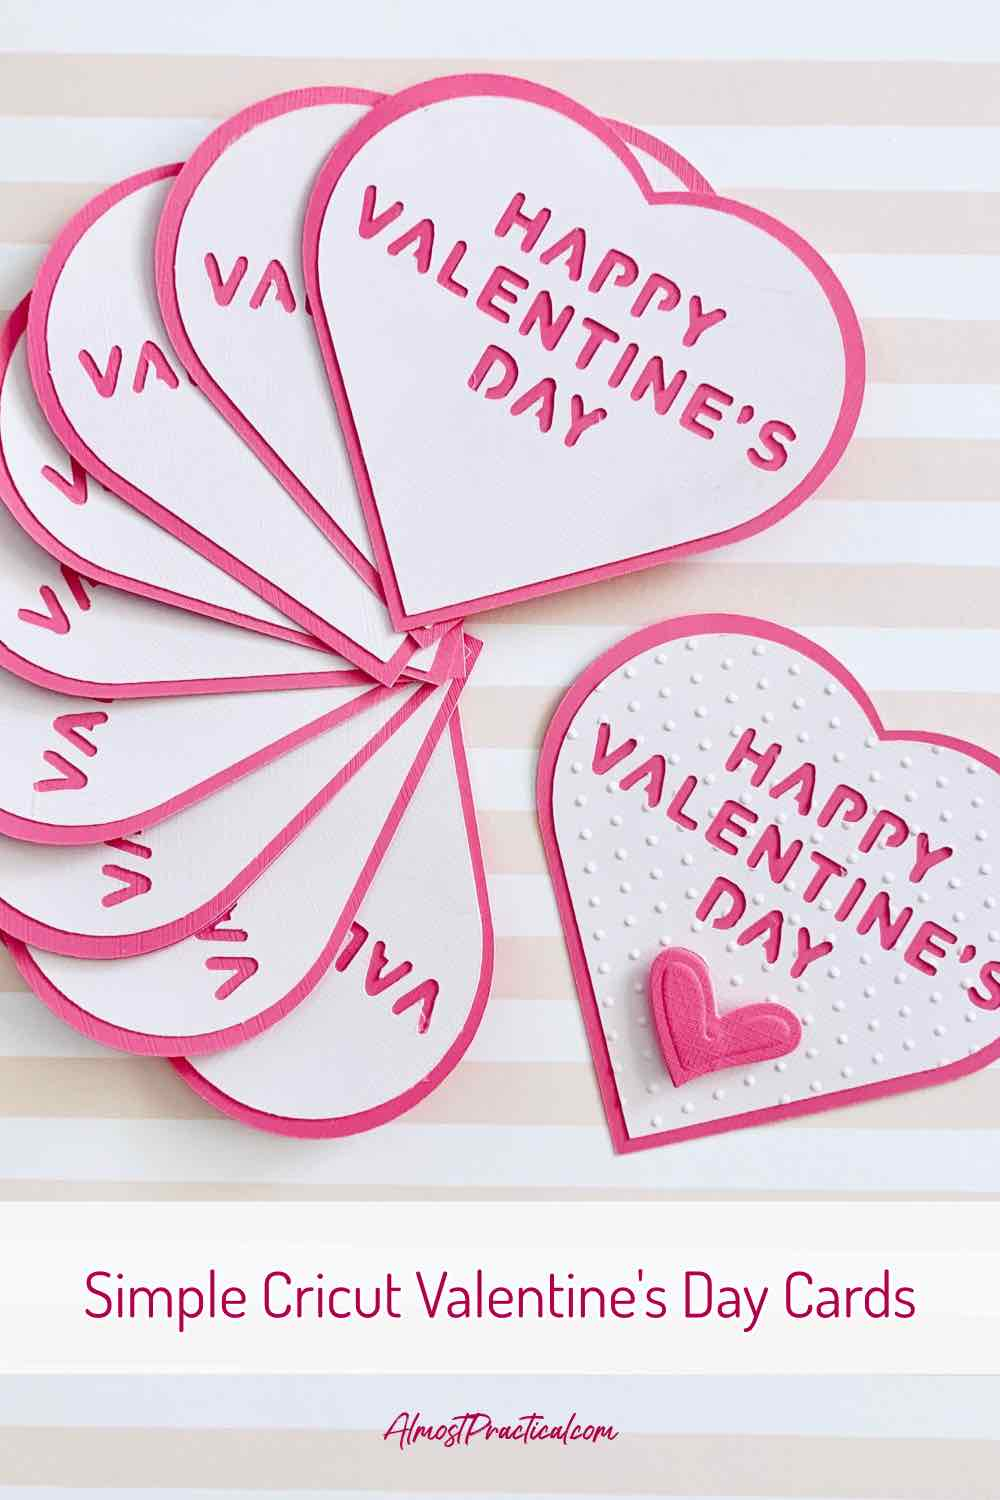 Simple hot pink and white Valentine's Day cards made using a Cricut Machine.